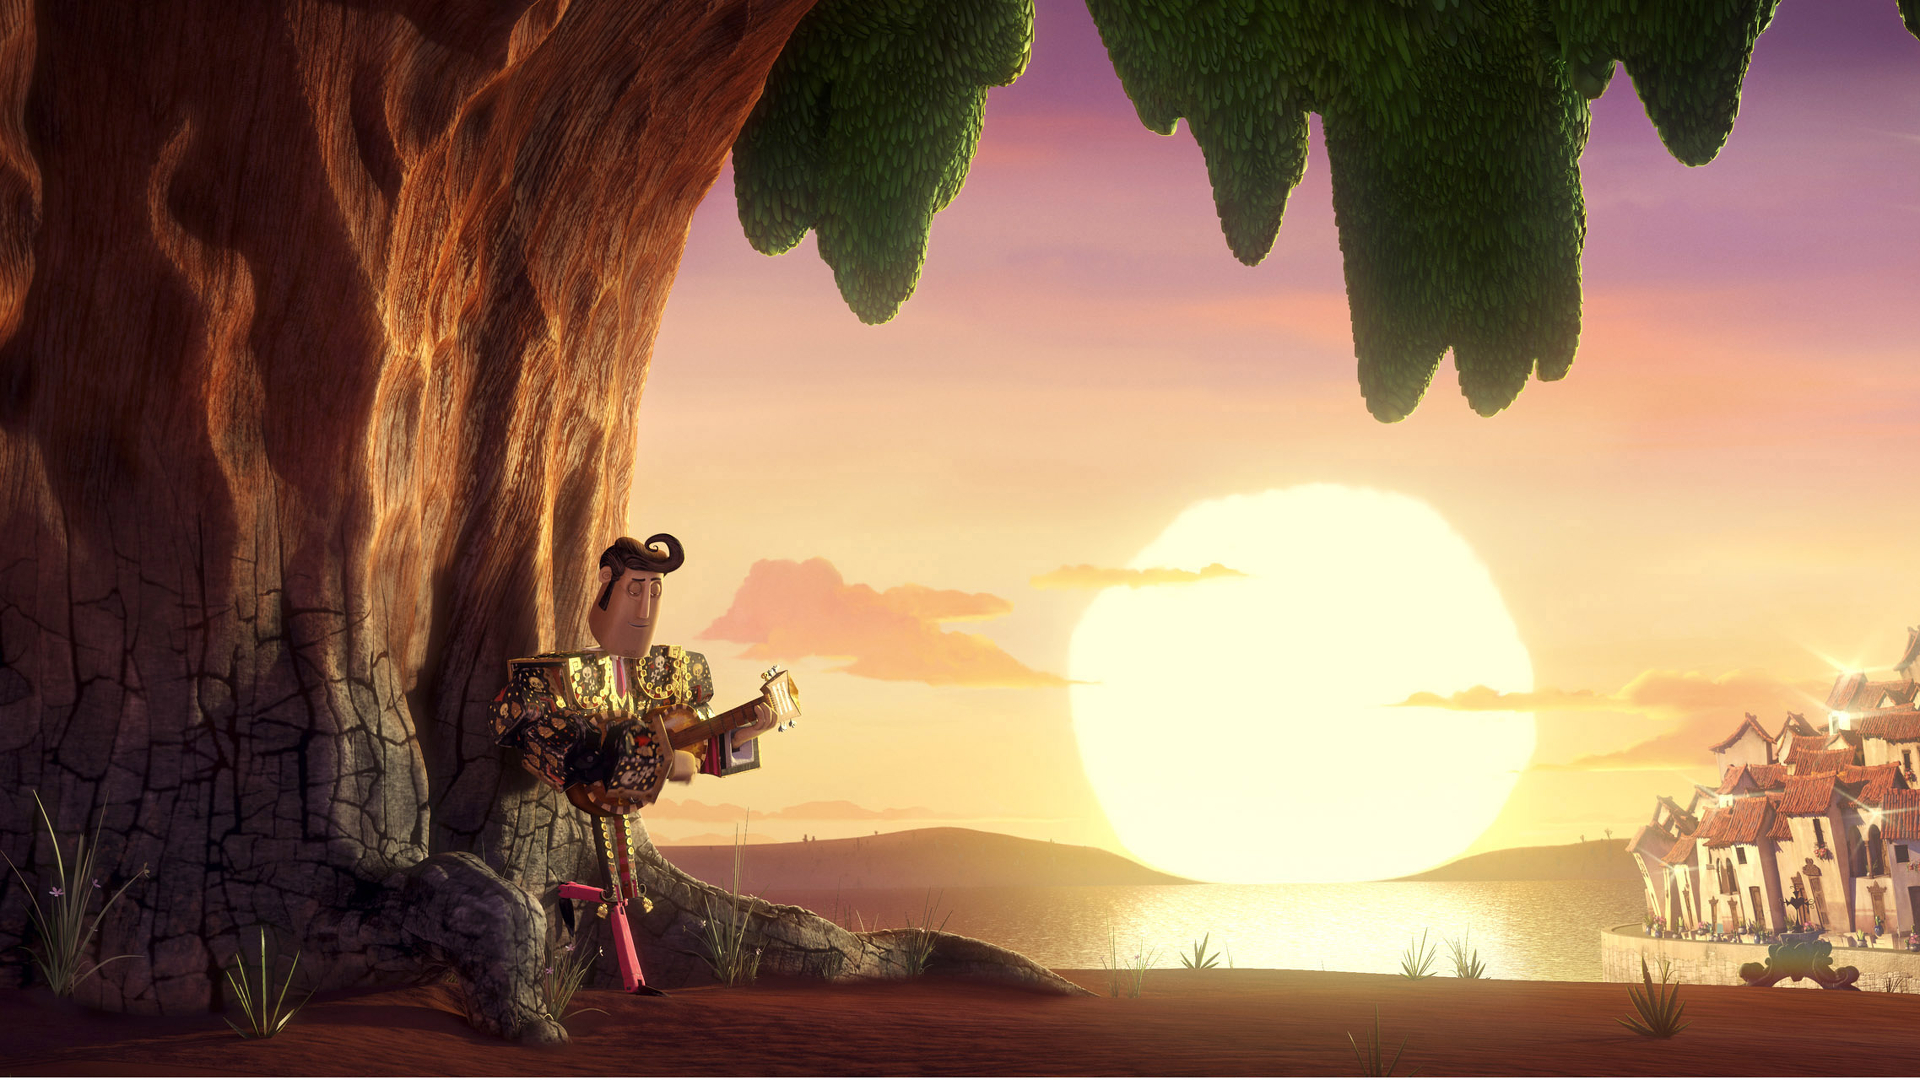 the book of life movie hd wallpapers - all hd wallpapers